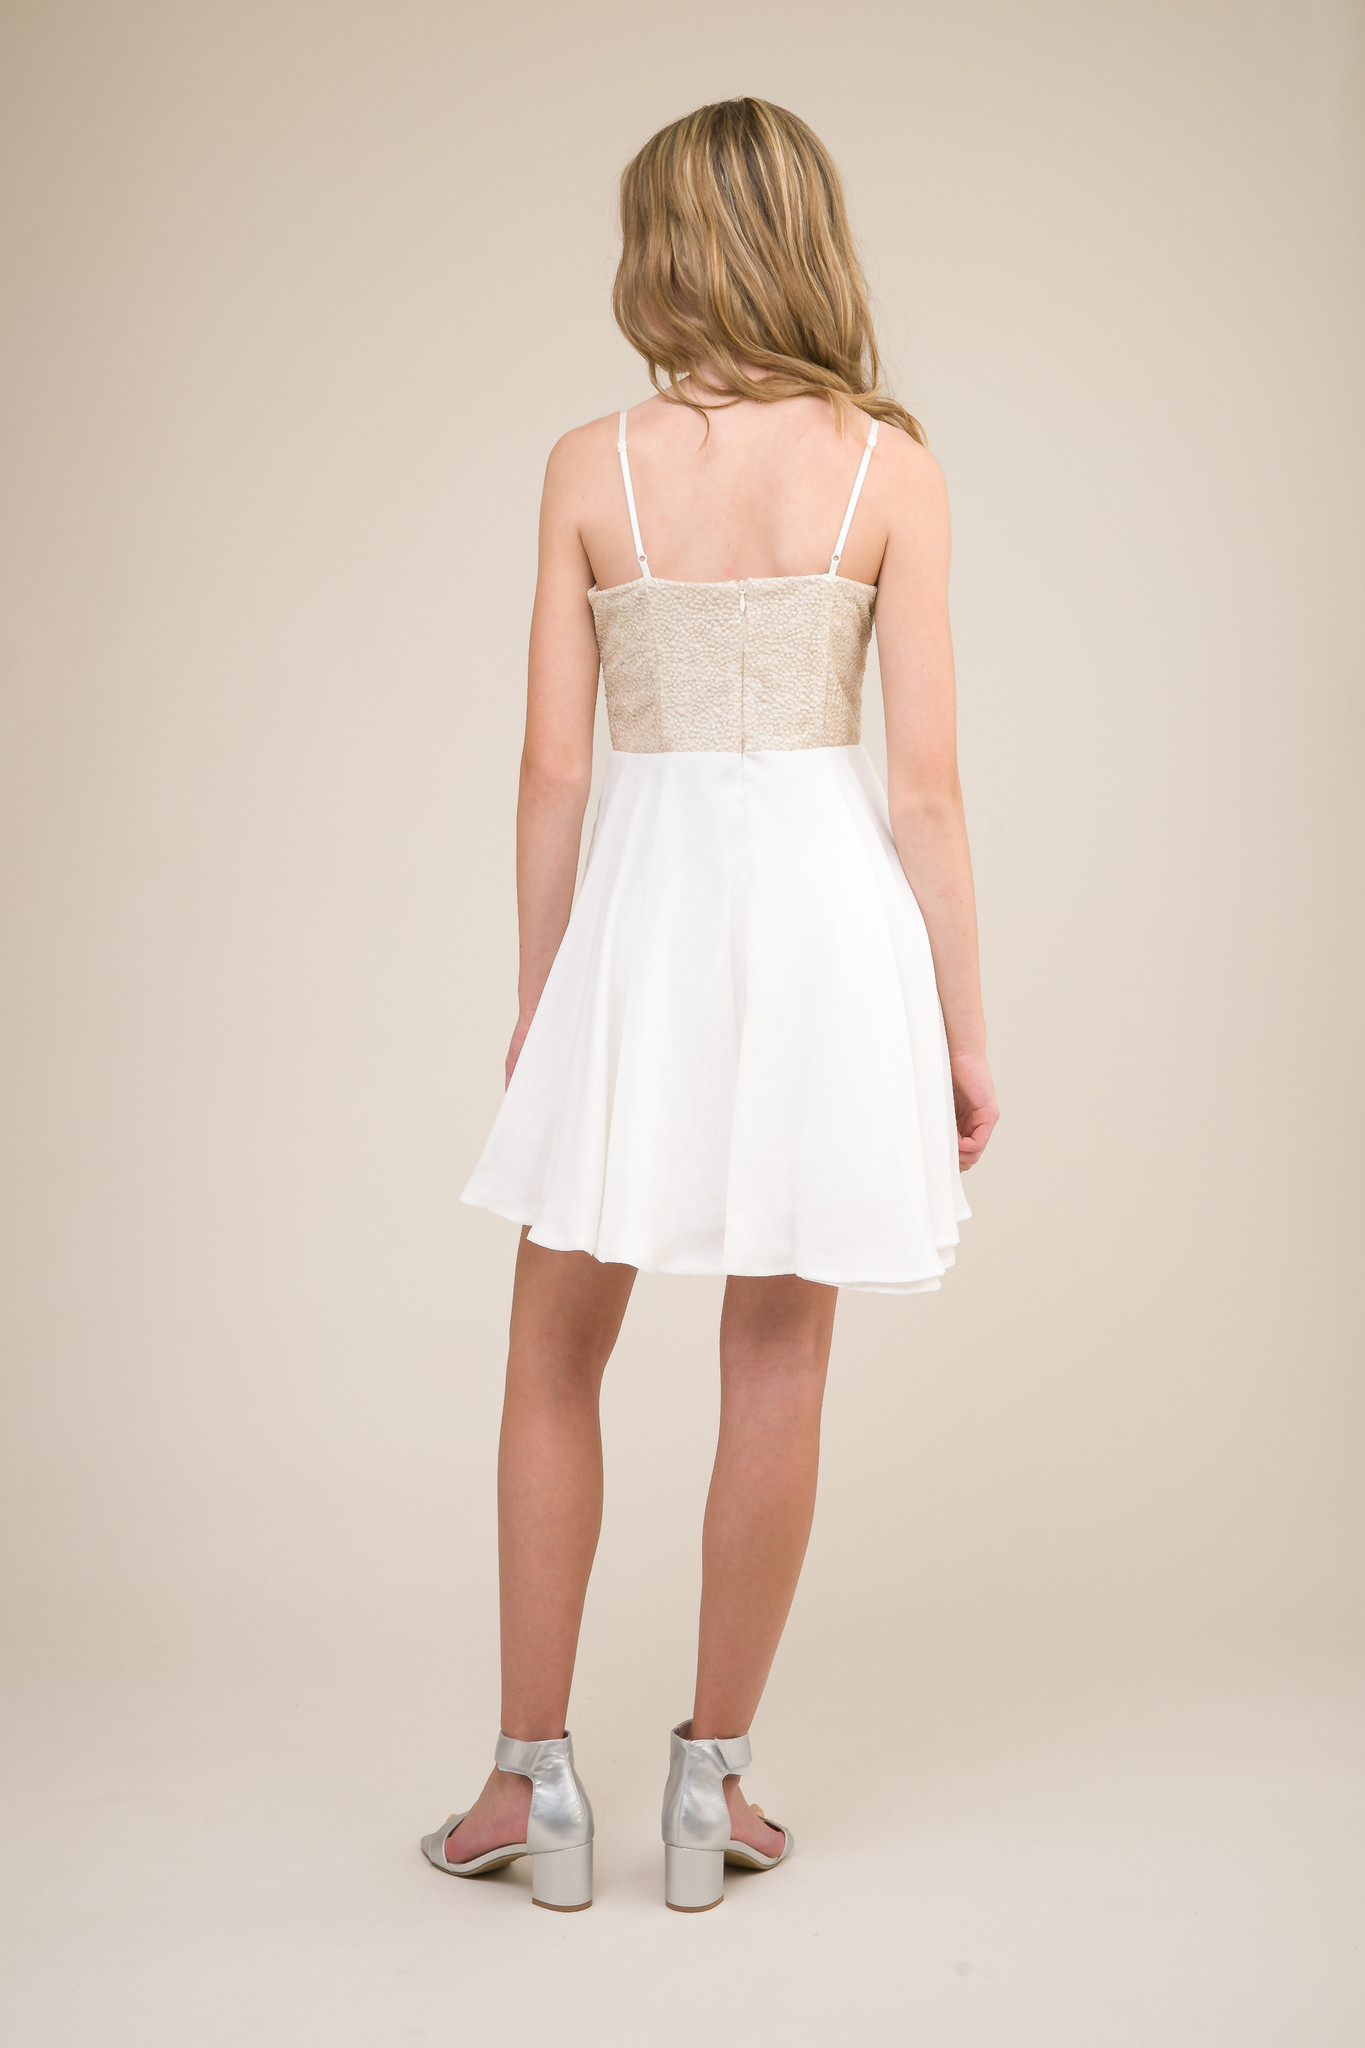 Ivory and Gold Chiffon Dress with Sequins in Longer Length back.